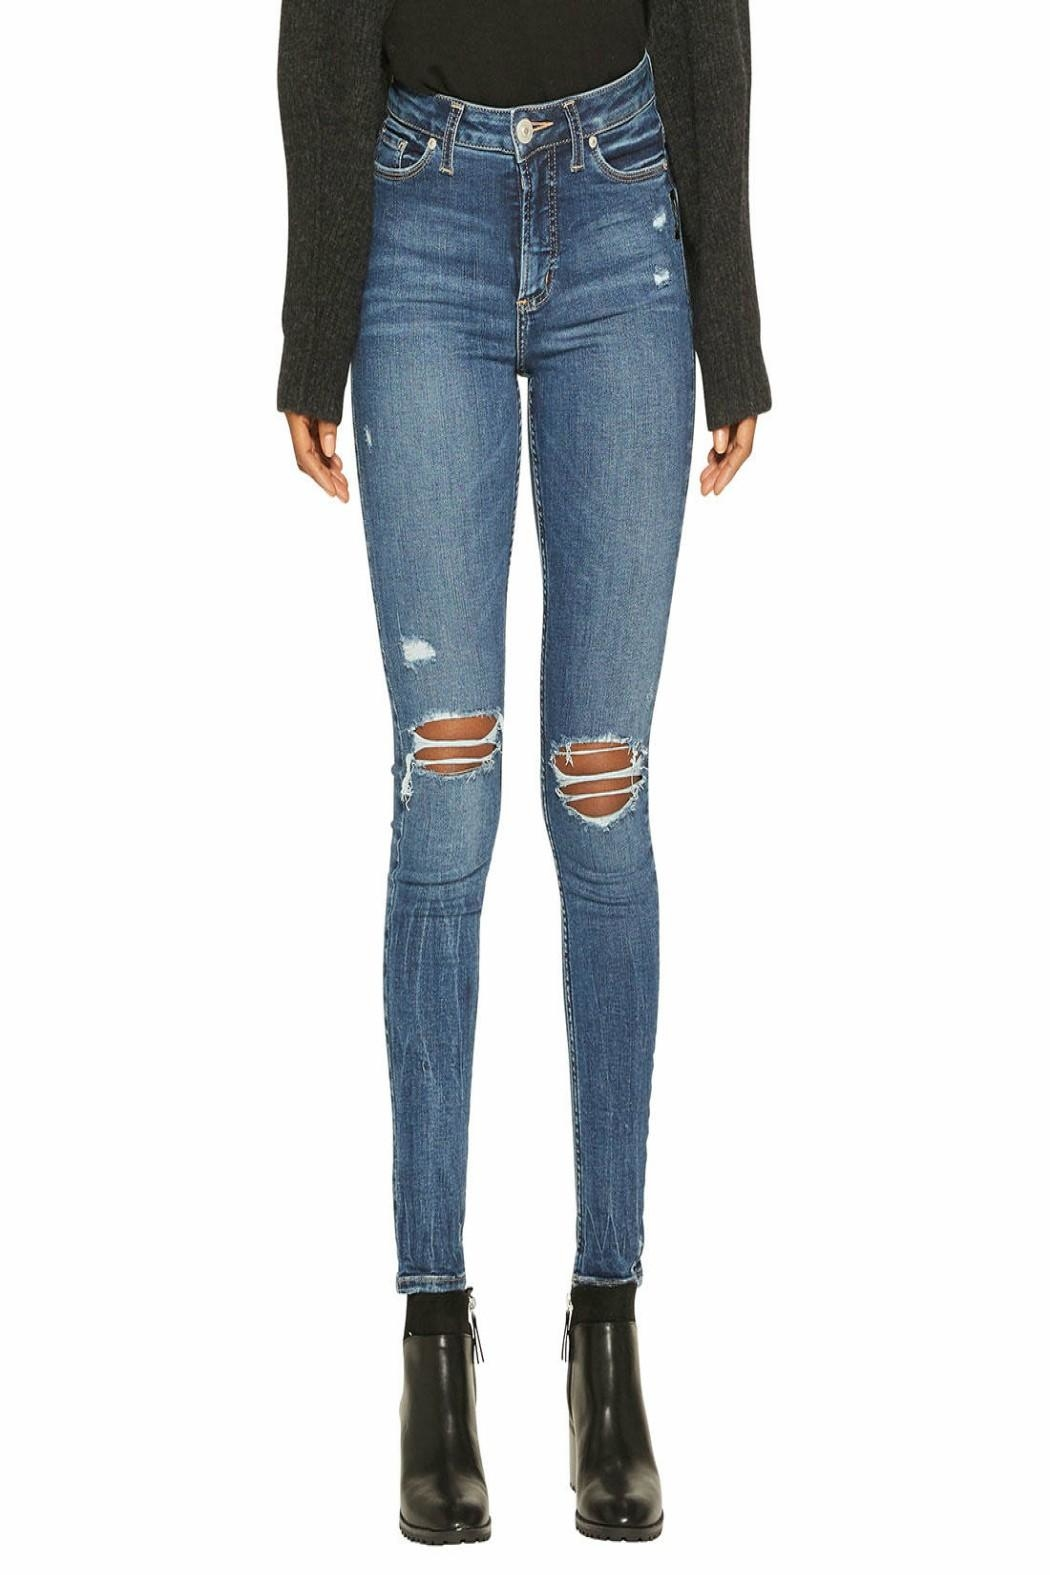 Silver Jeans Co. Robson High-Rise Skinny - Main Image